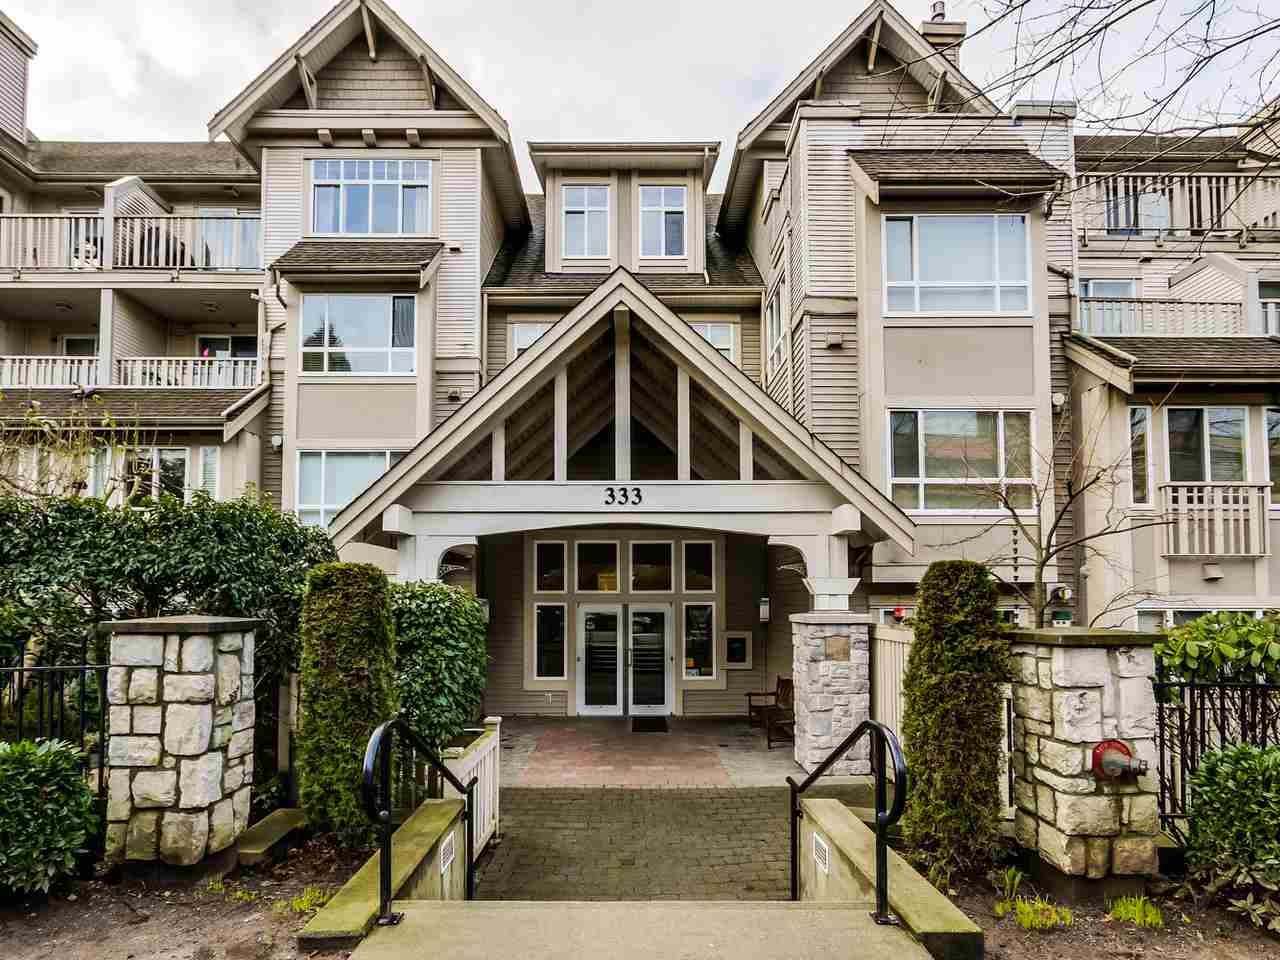 Main Photo: 109 333 E 1ST STREET in North Vancouver: Lower Lonsdale Condo for sale : MLS® # R2032321